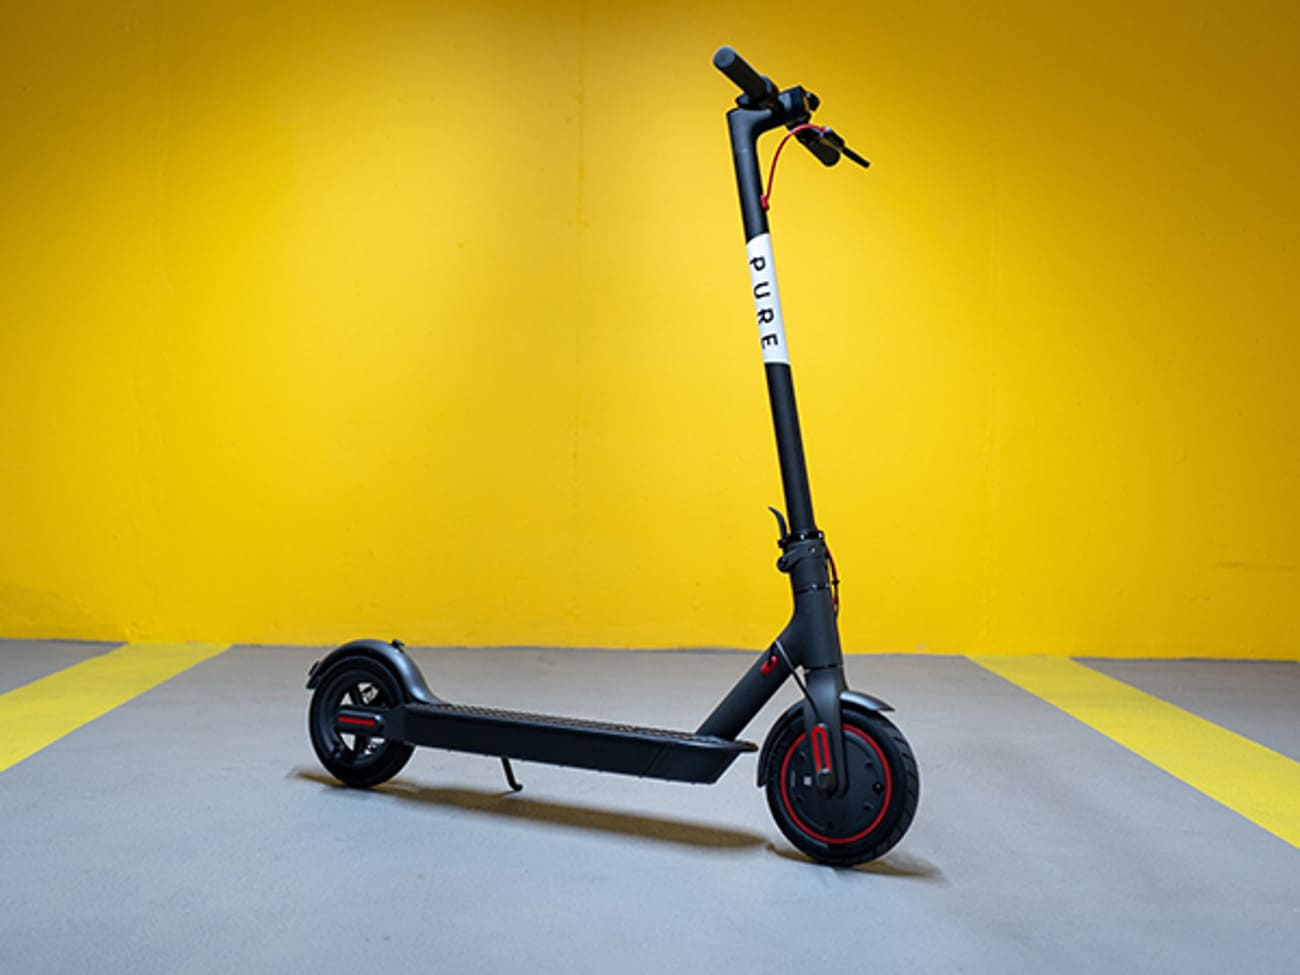 Repair of electric scooters, electric scooters, electric bicycles, gyroboards, etc.